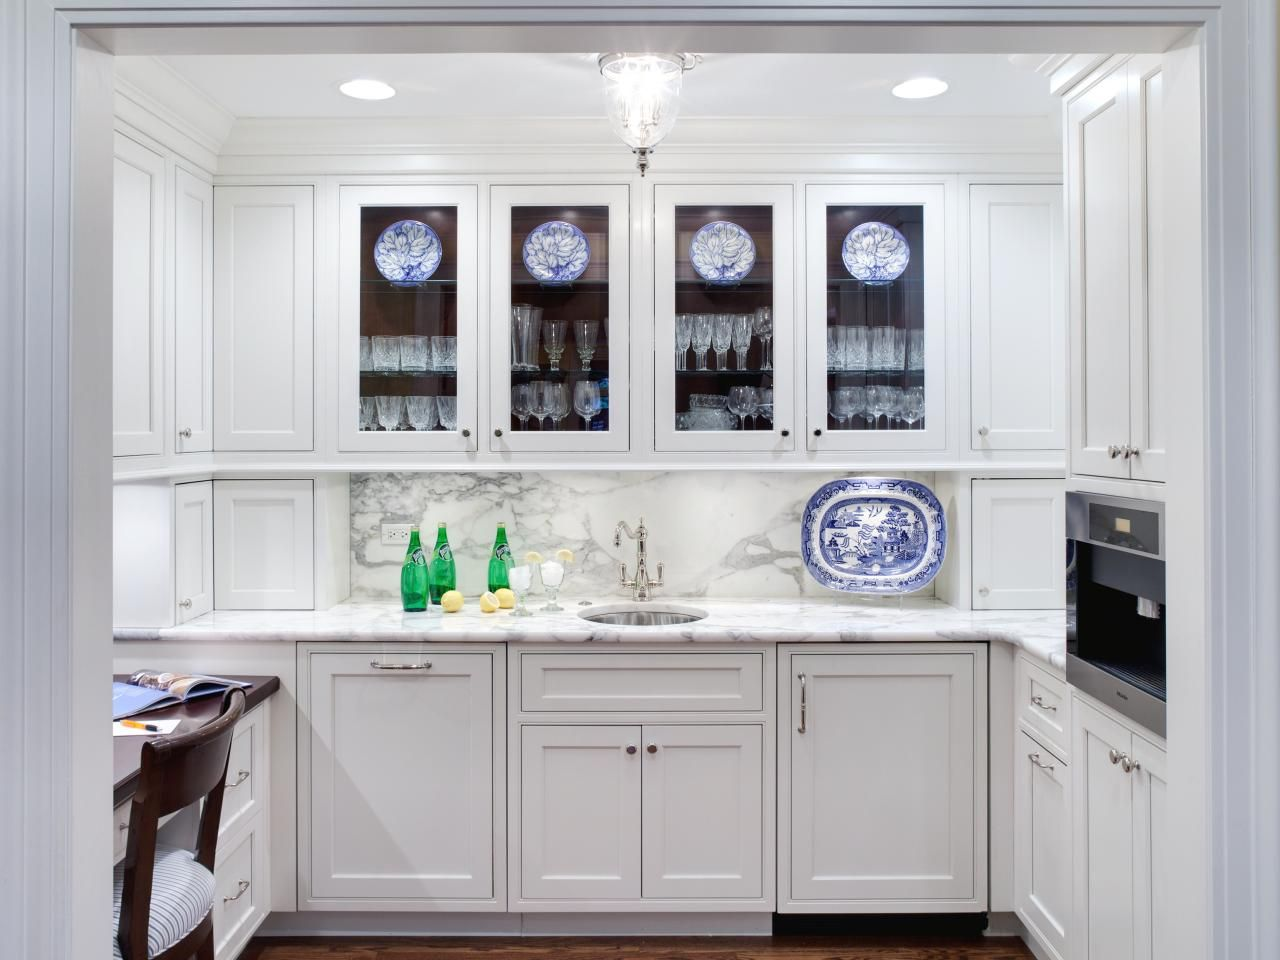 Pictures of kitchen backsplash ideas from white dishes wet bars